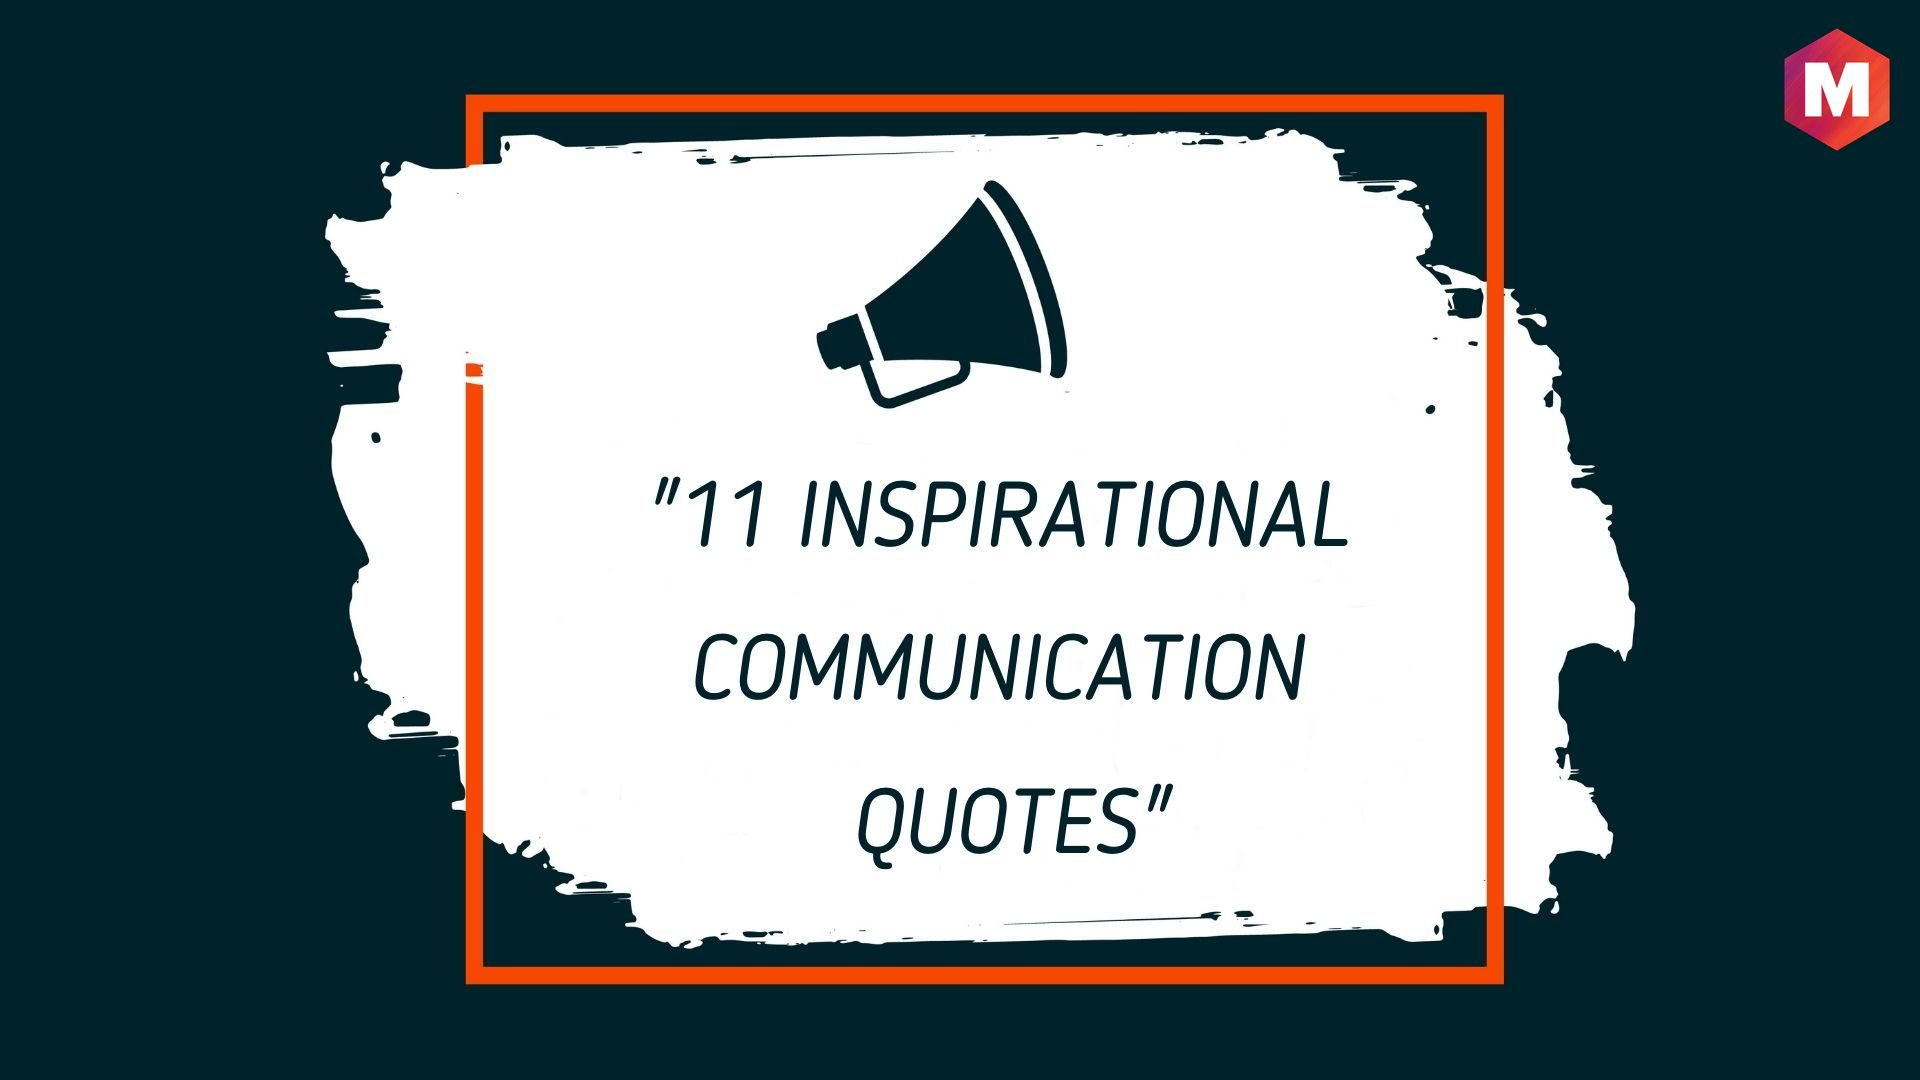 Inspirational Communication Quotes